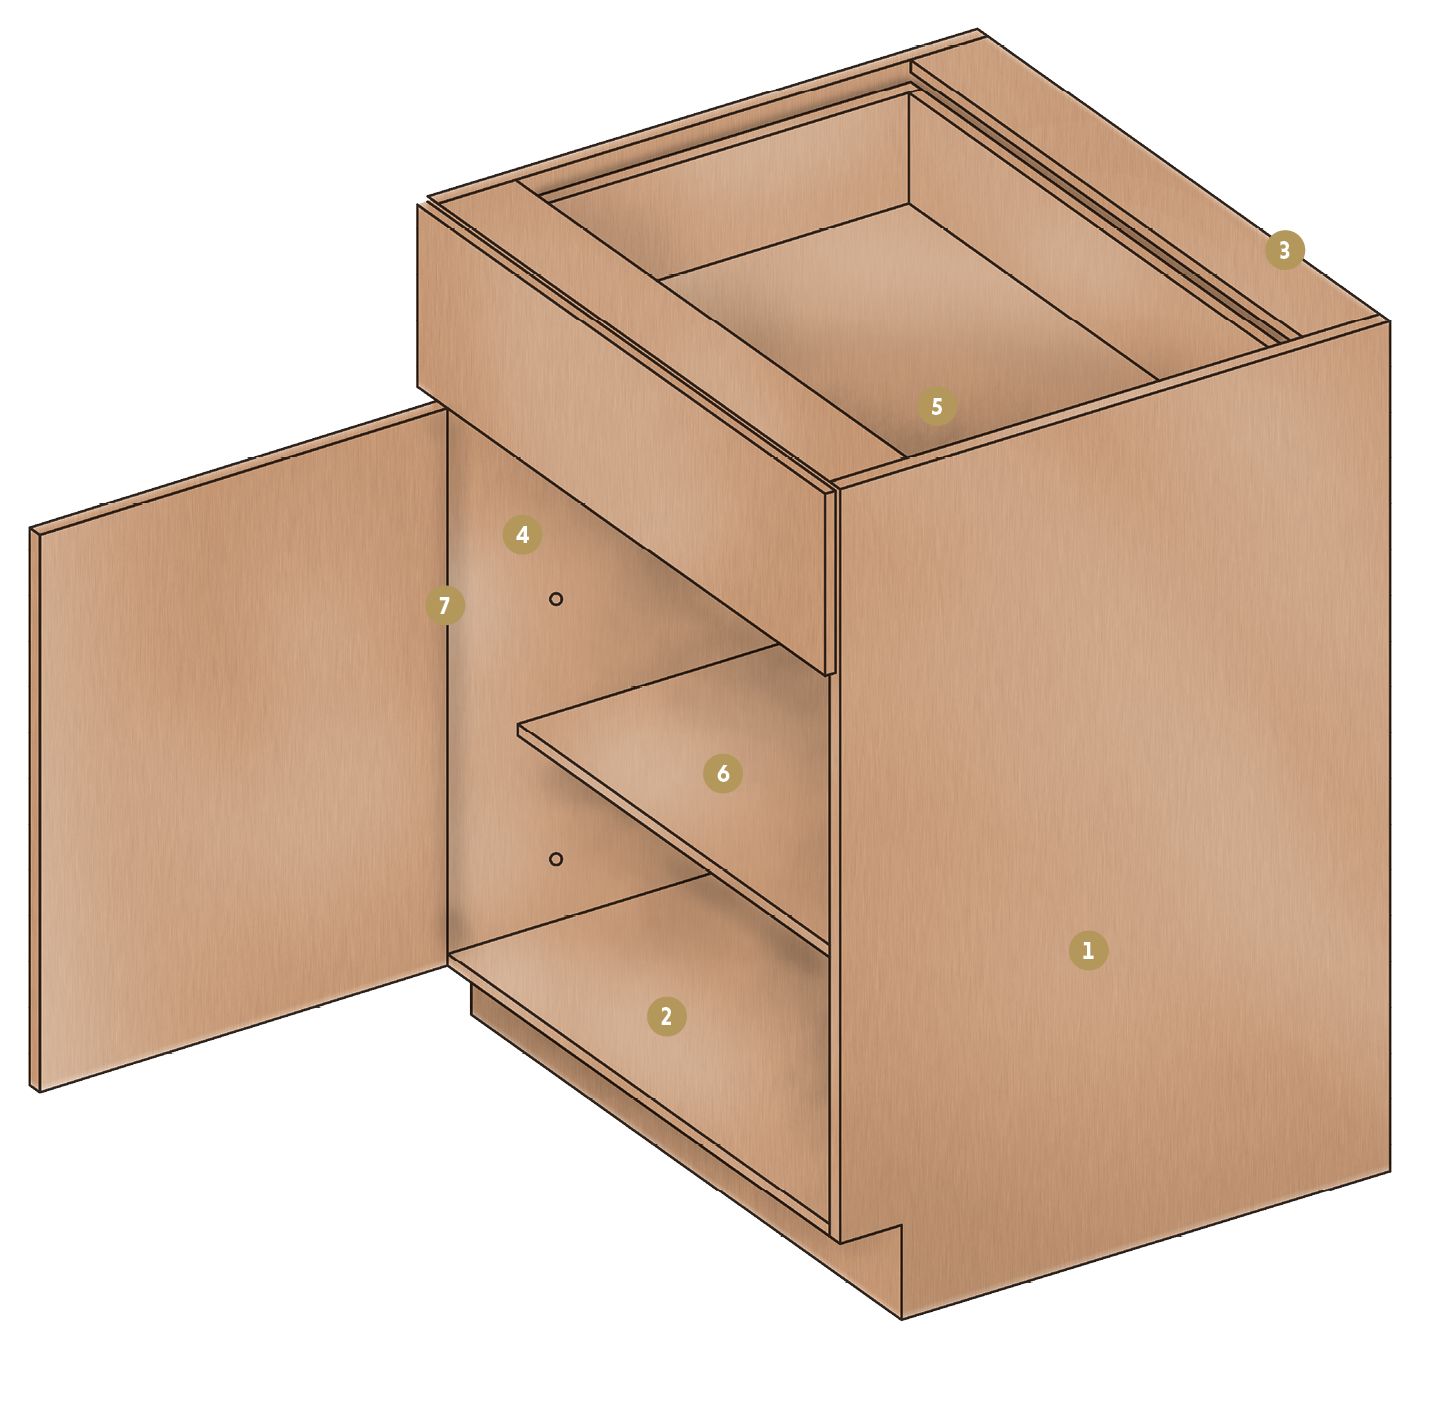 ... Standard With Double Wall Steel Drawer Box Option And Wood Dovetail  Drawer Box Option